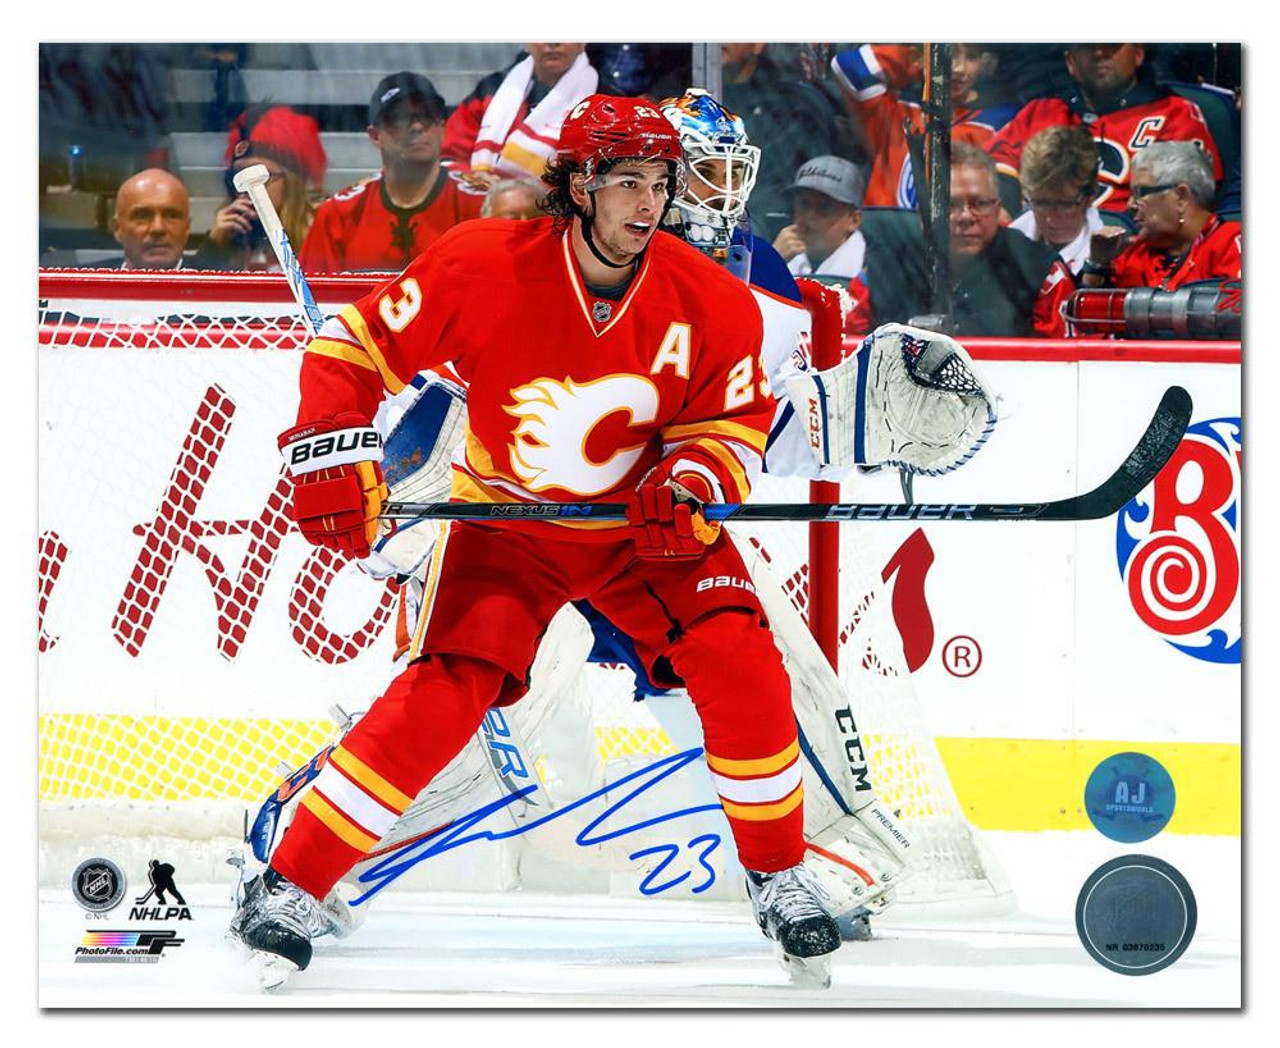 Sean Monahan Calgary Flames Autographed 8x10 Photo Maverick Autographs And Colelctibles